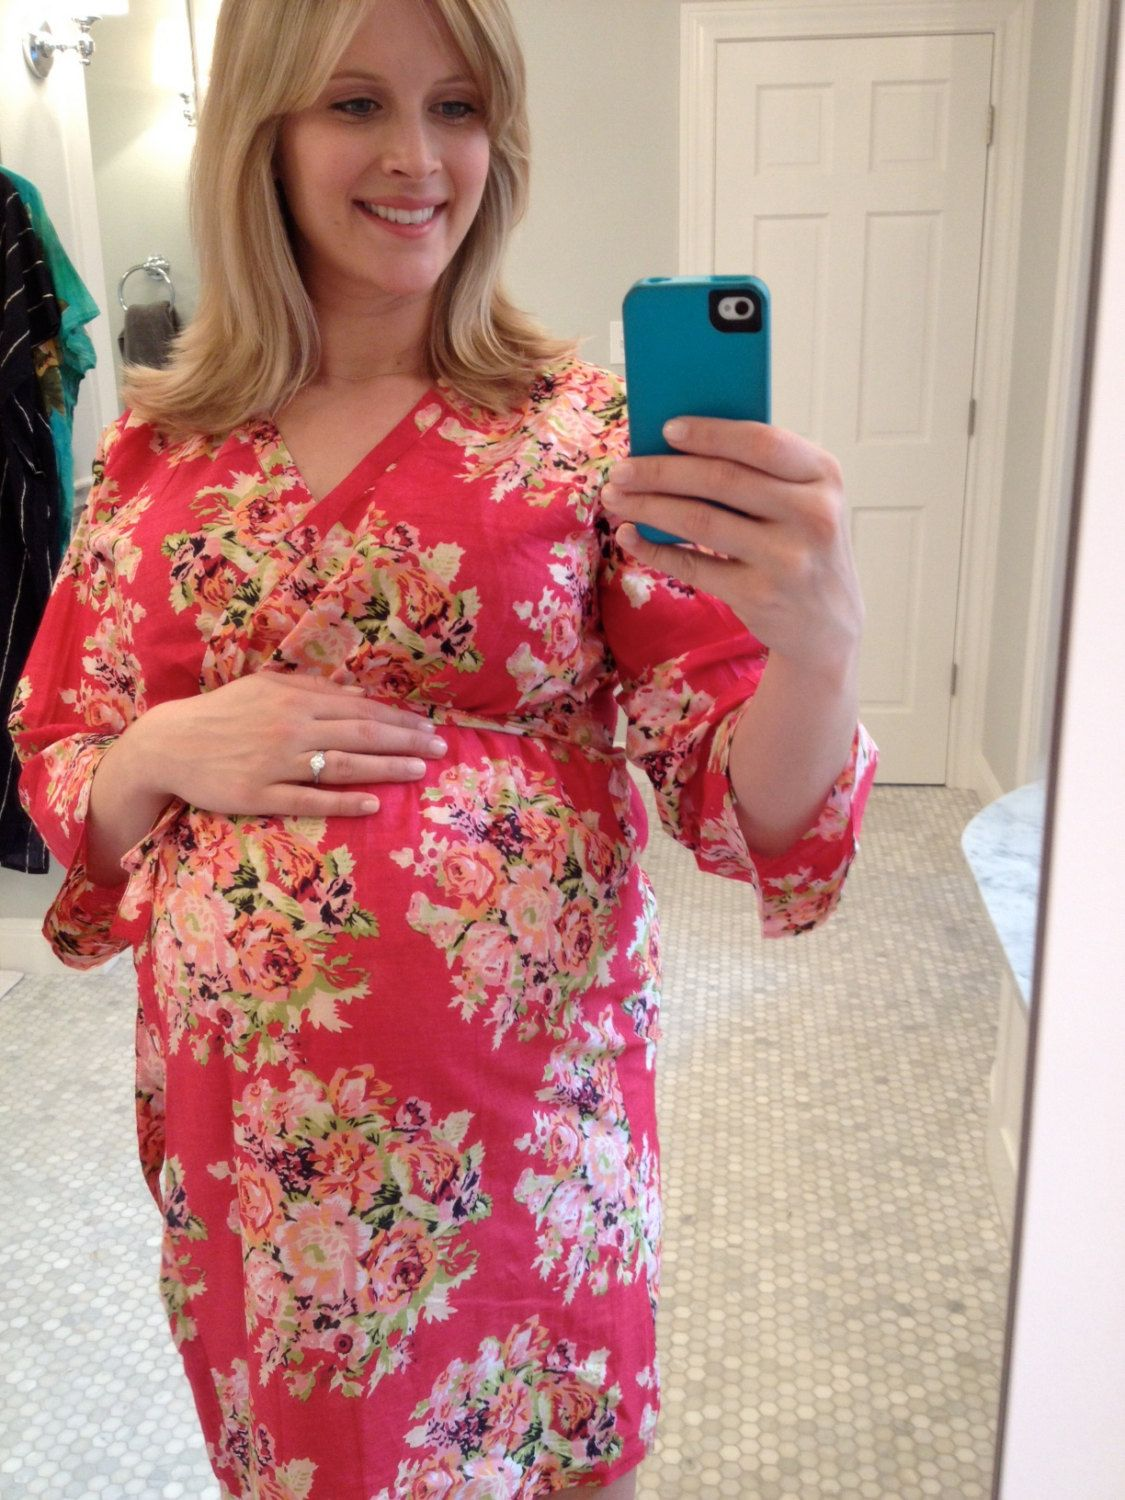 Maternity Hospital Gown Delivery Robe - Red - Perfect as labor delivery gown, nursing mothers, for moms & to be moms, Pregnancy Photoprops. $30.00, via Etsy.